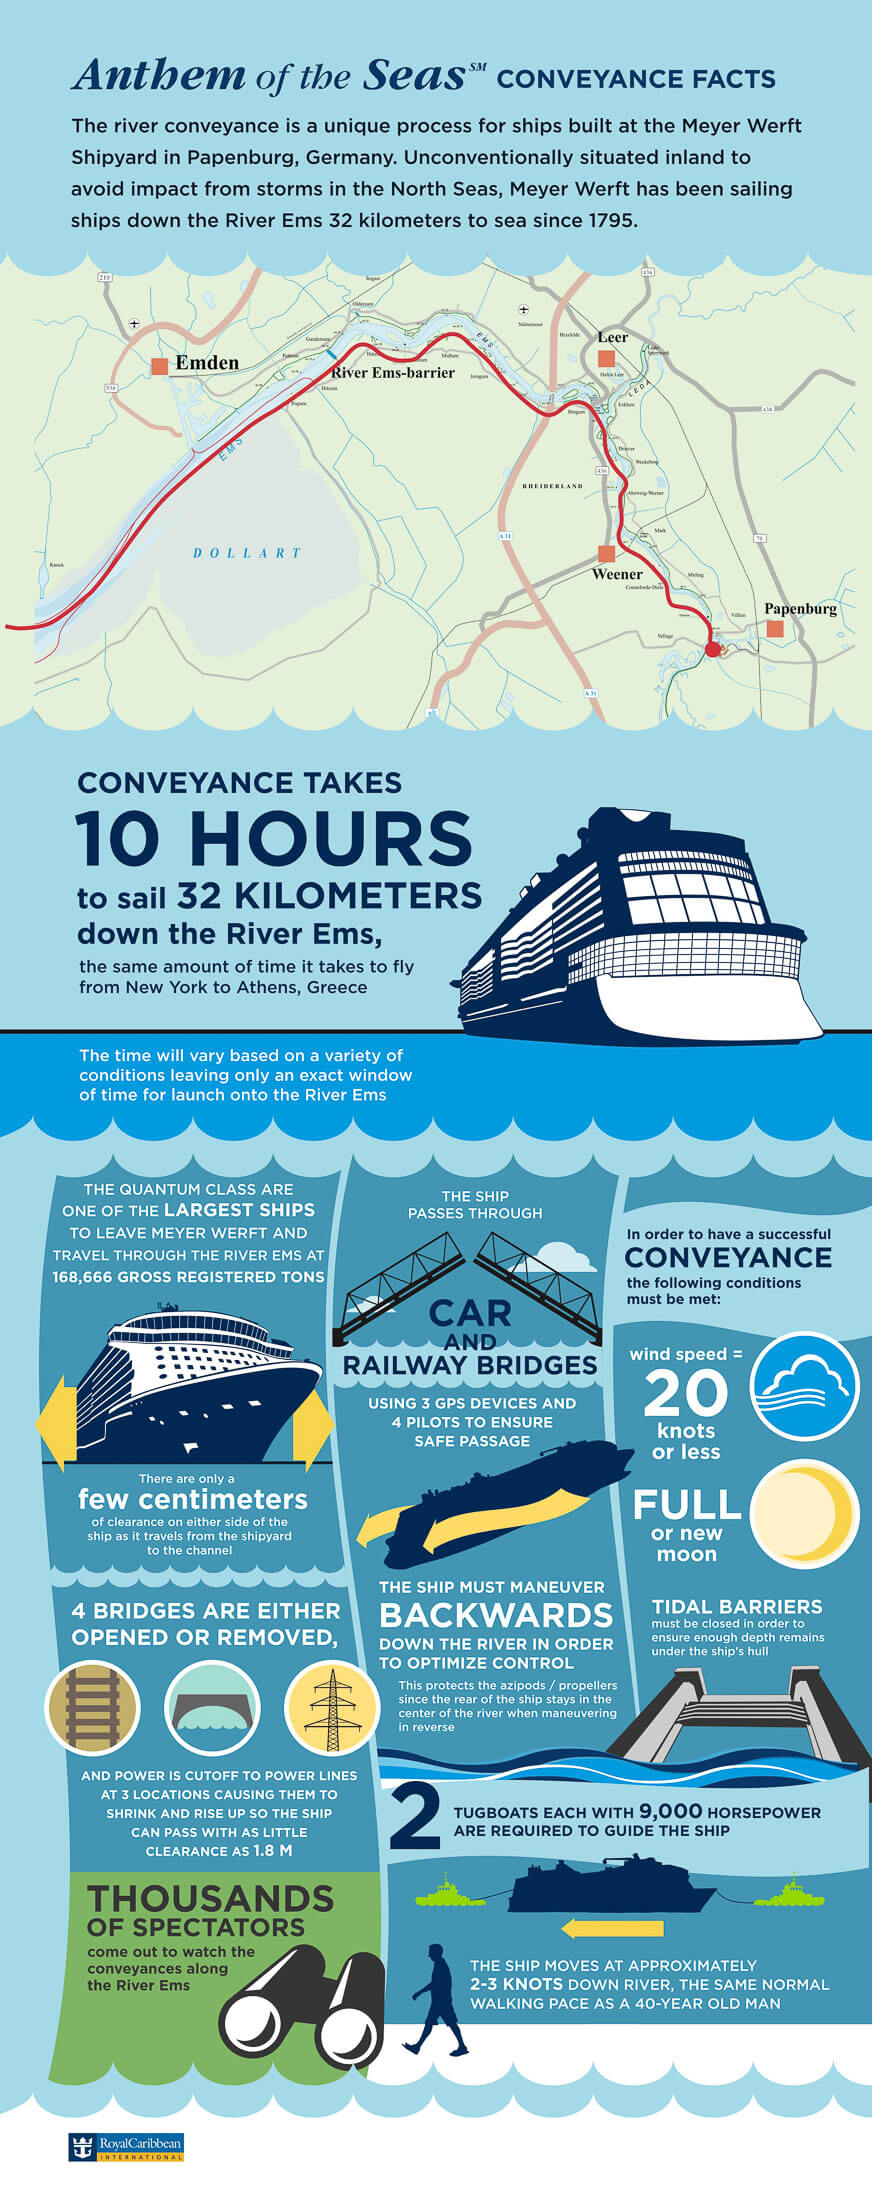 Anthem of the Seas Conveyance